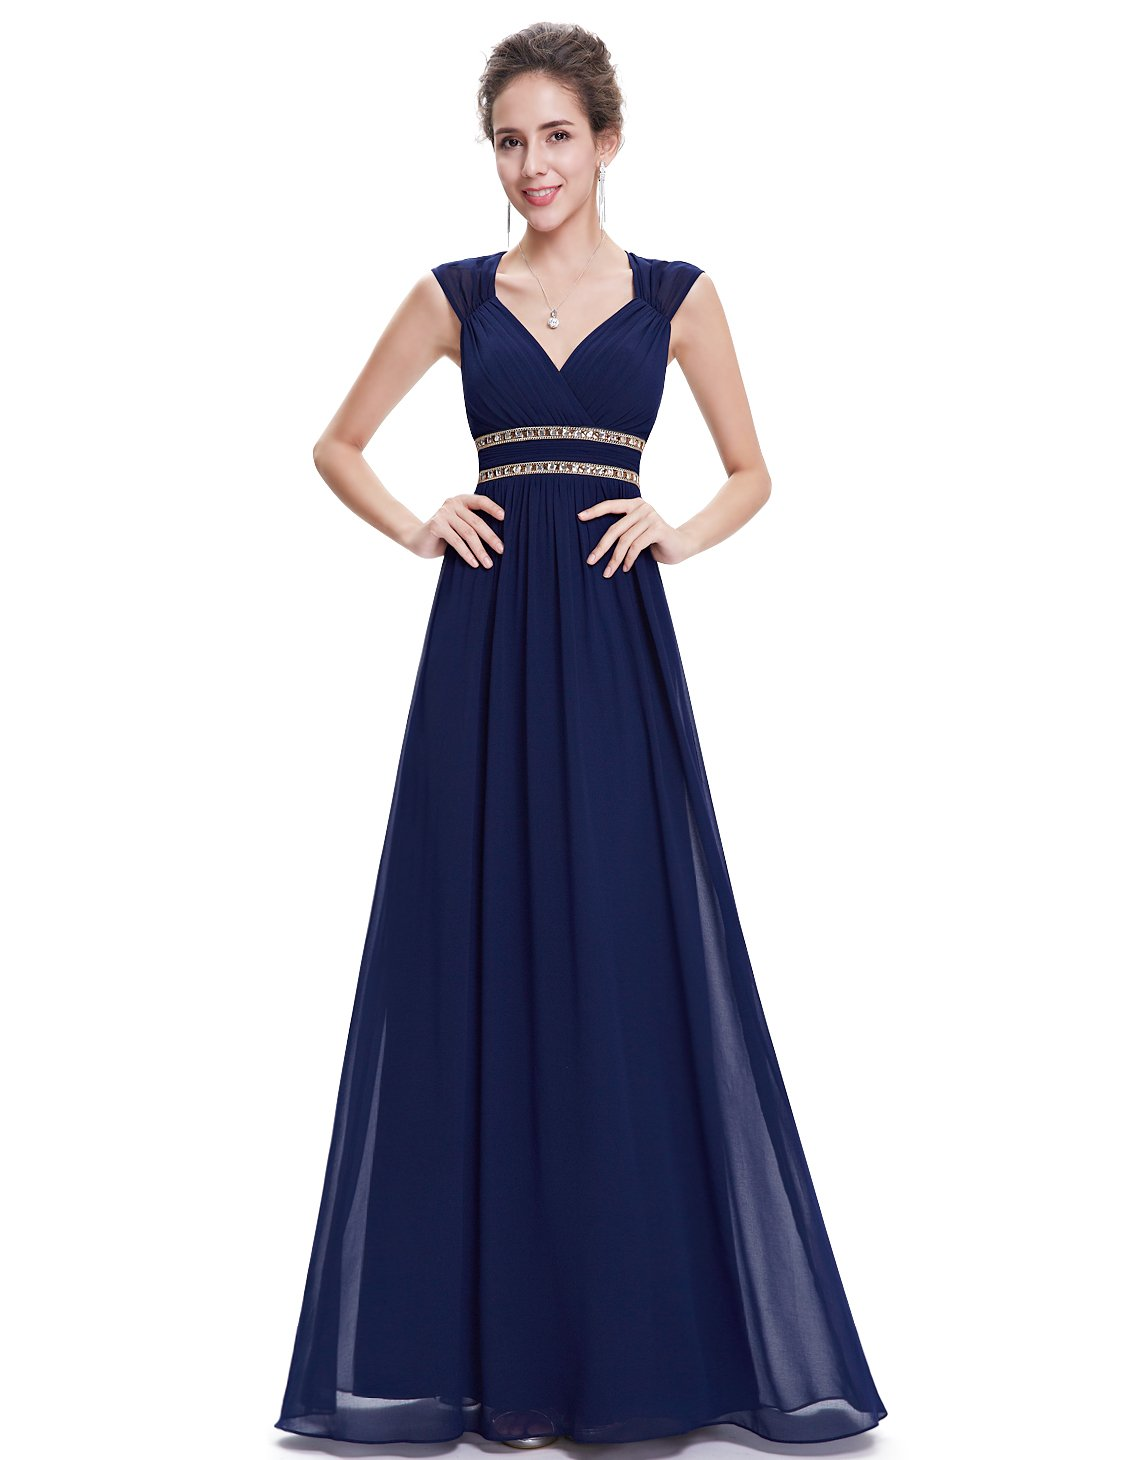 Ever-Pretty Womens Floor Length Beaded Grecian Style Military Ball Dress 6 US Navy Blue